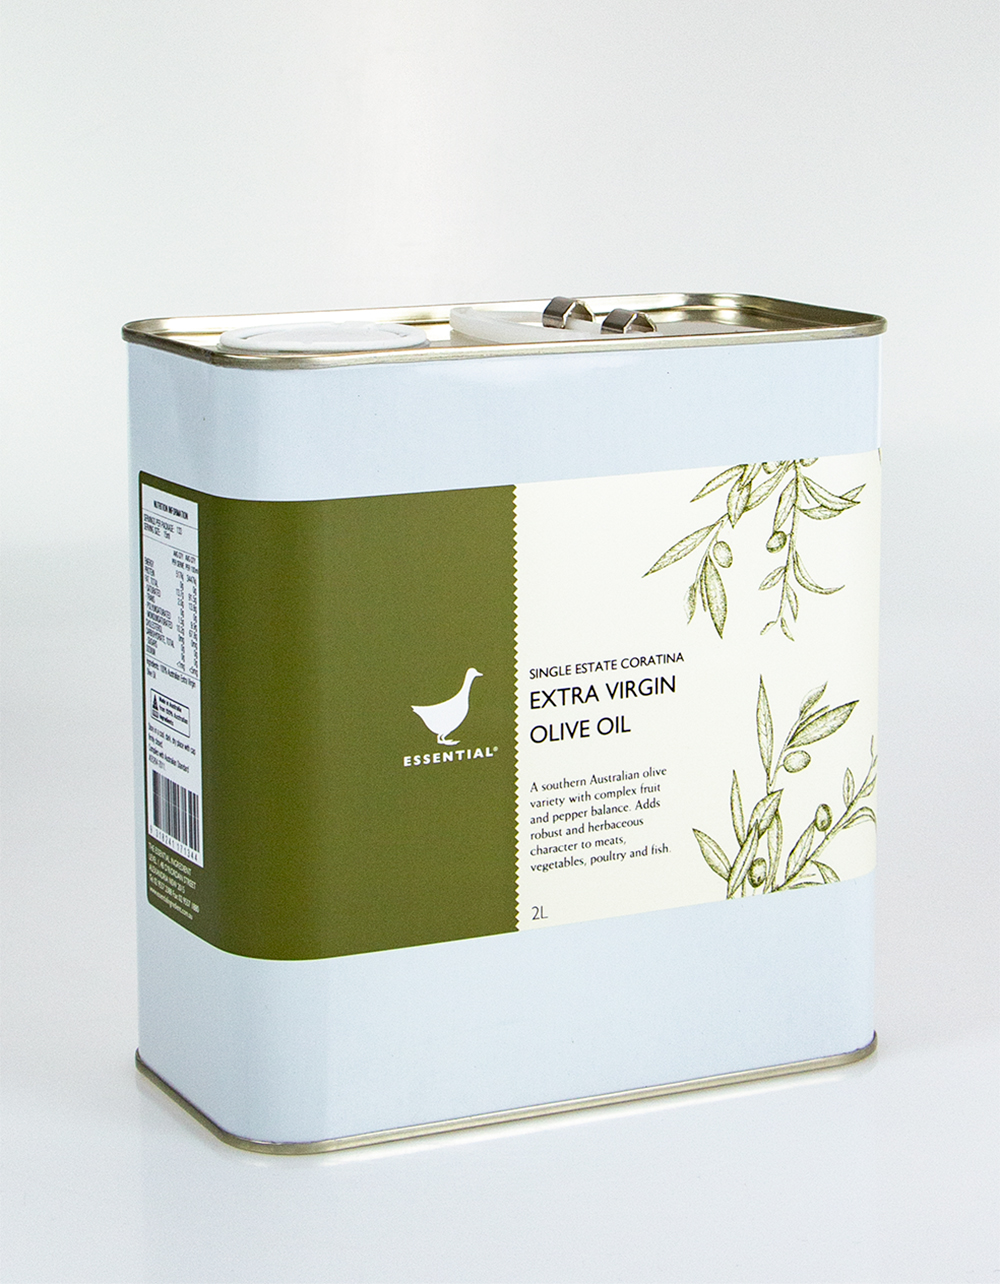 The Essential Ingredient Coratina Extra Virgin Olive Oil